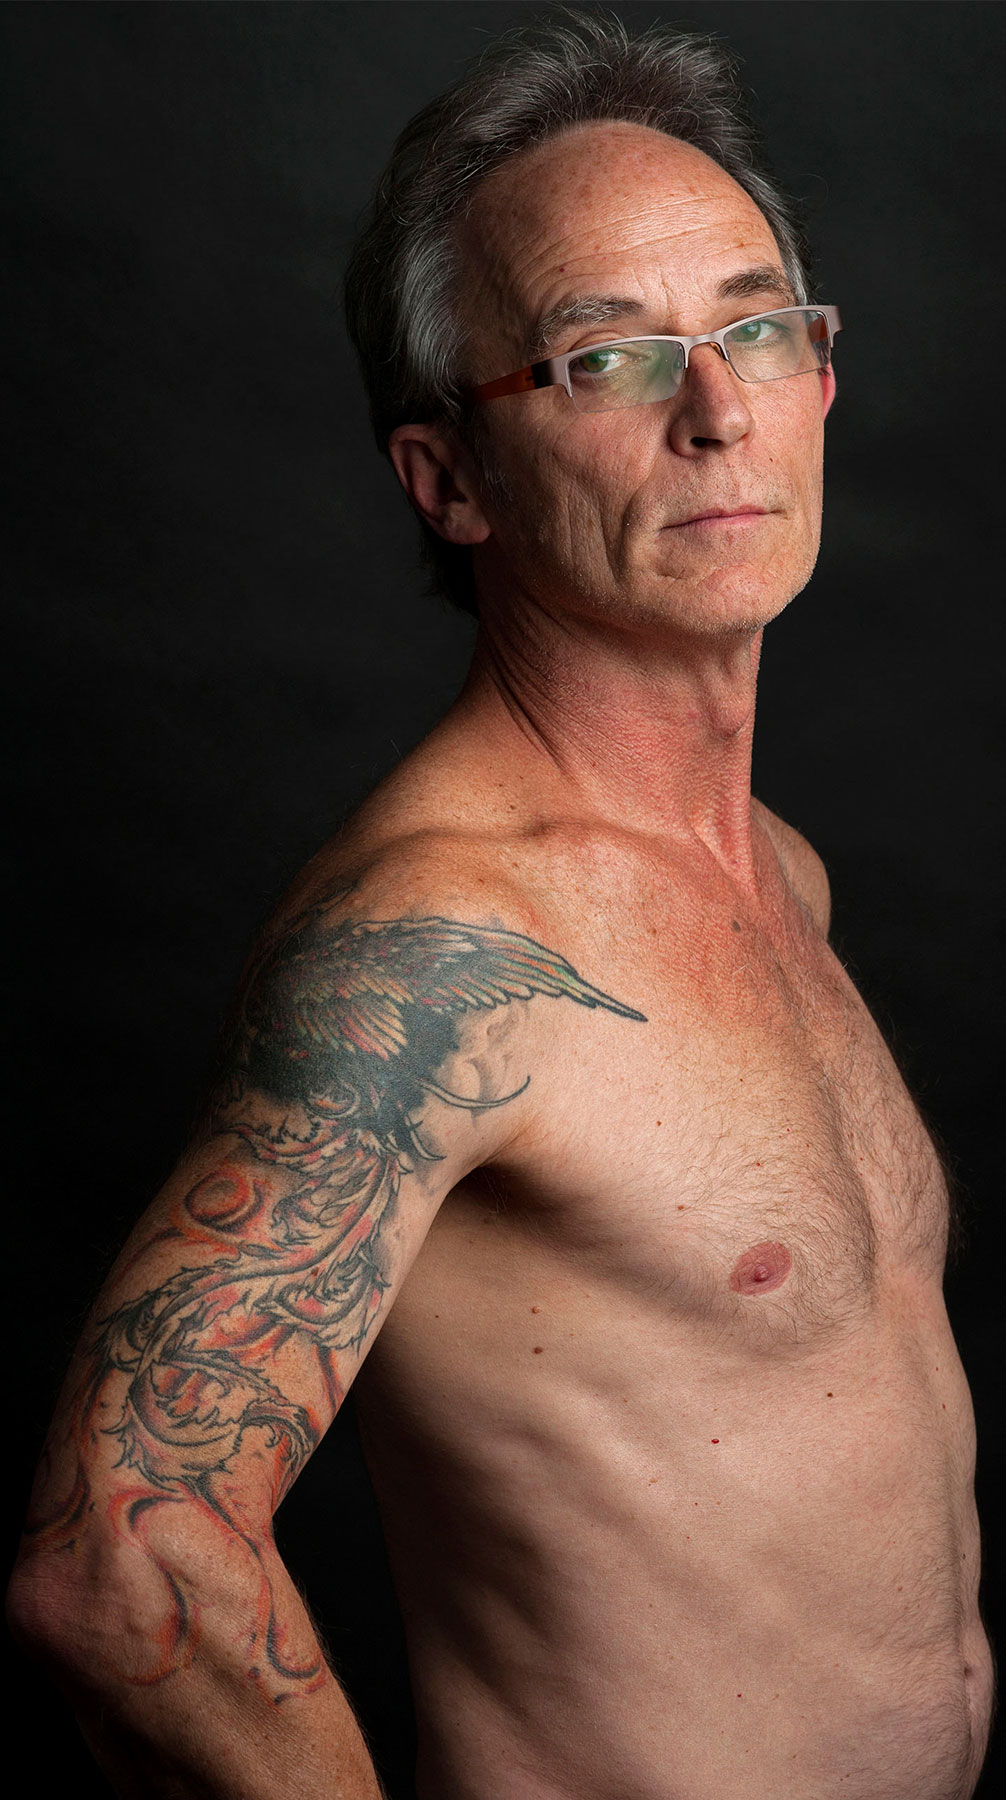 Tattoos Make Inroads With 50 And Older Crowd  The Japan Times